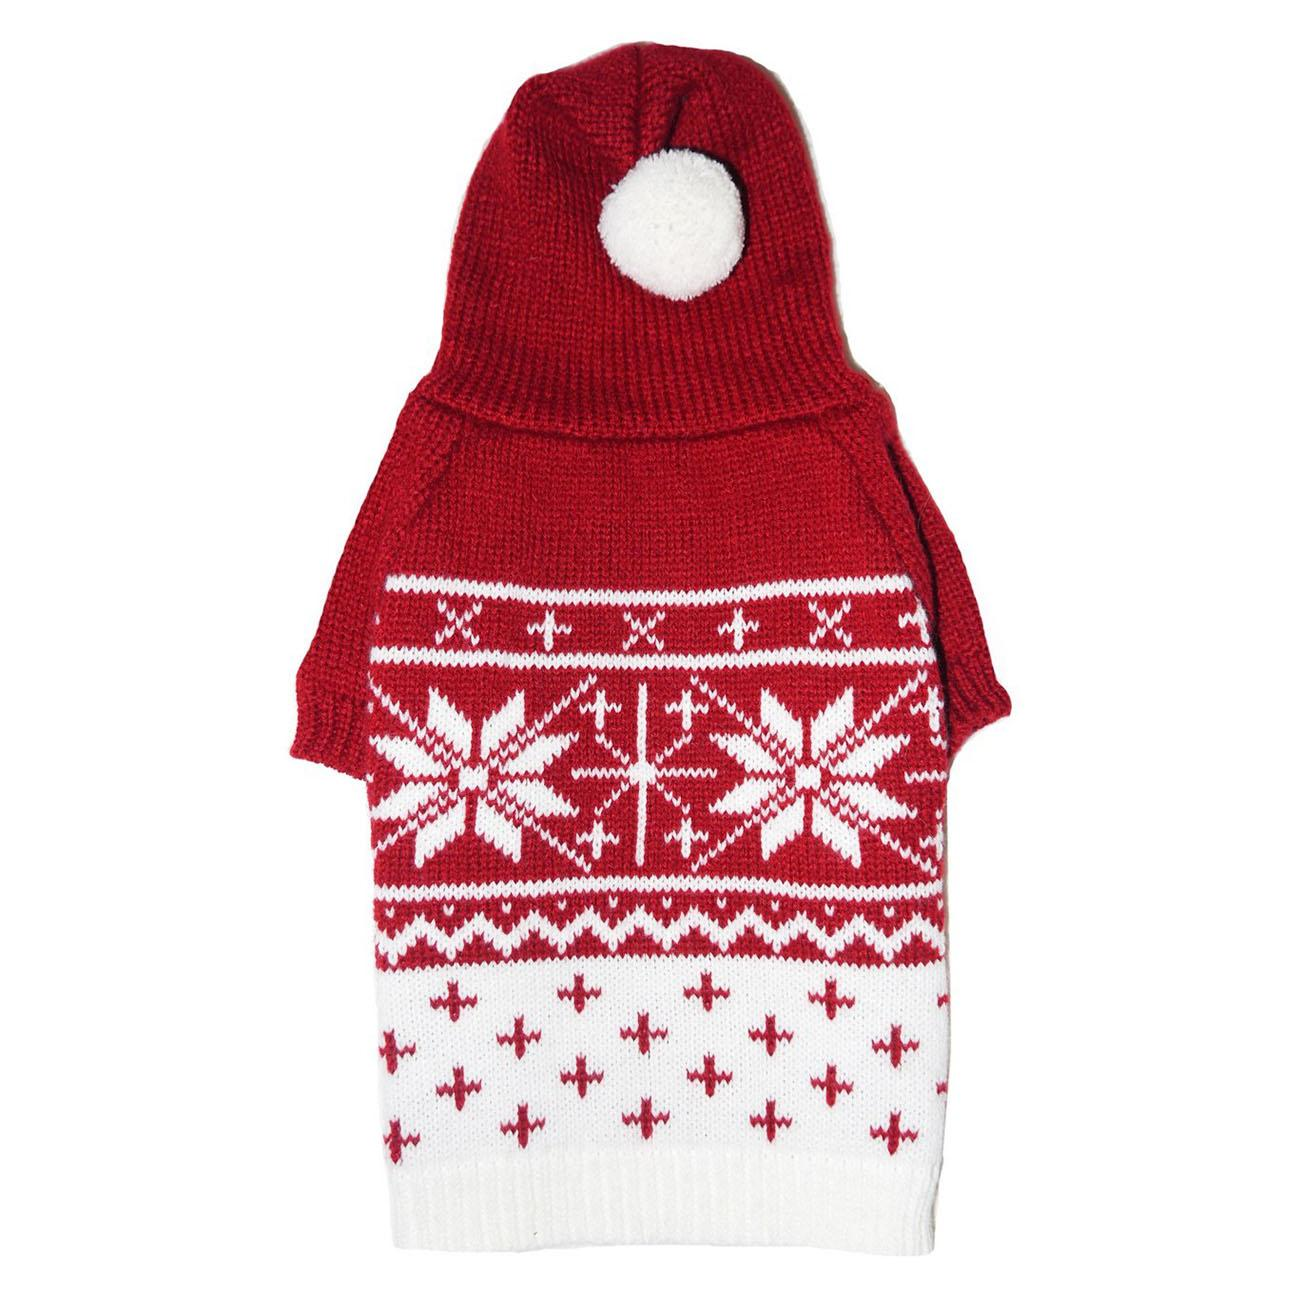 Reese Dog Sweater Hoodie by Pooch Outfitters - Red